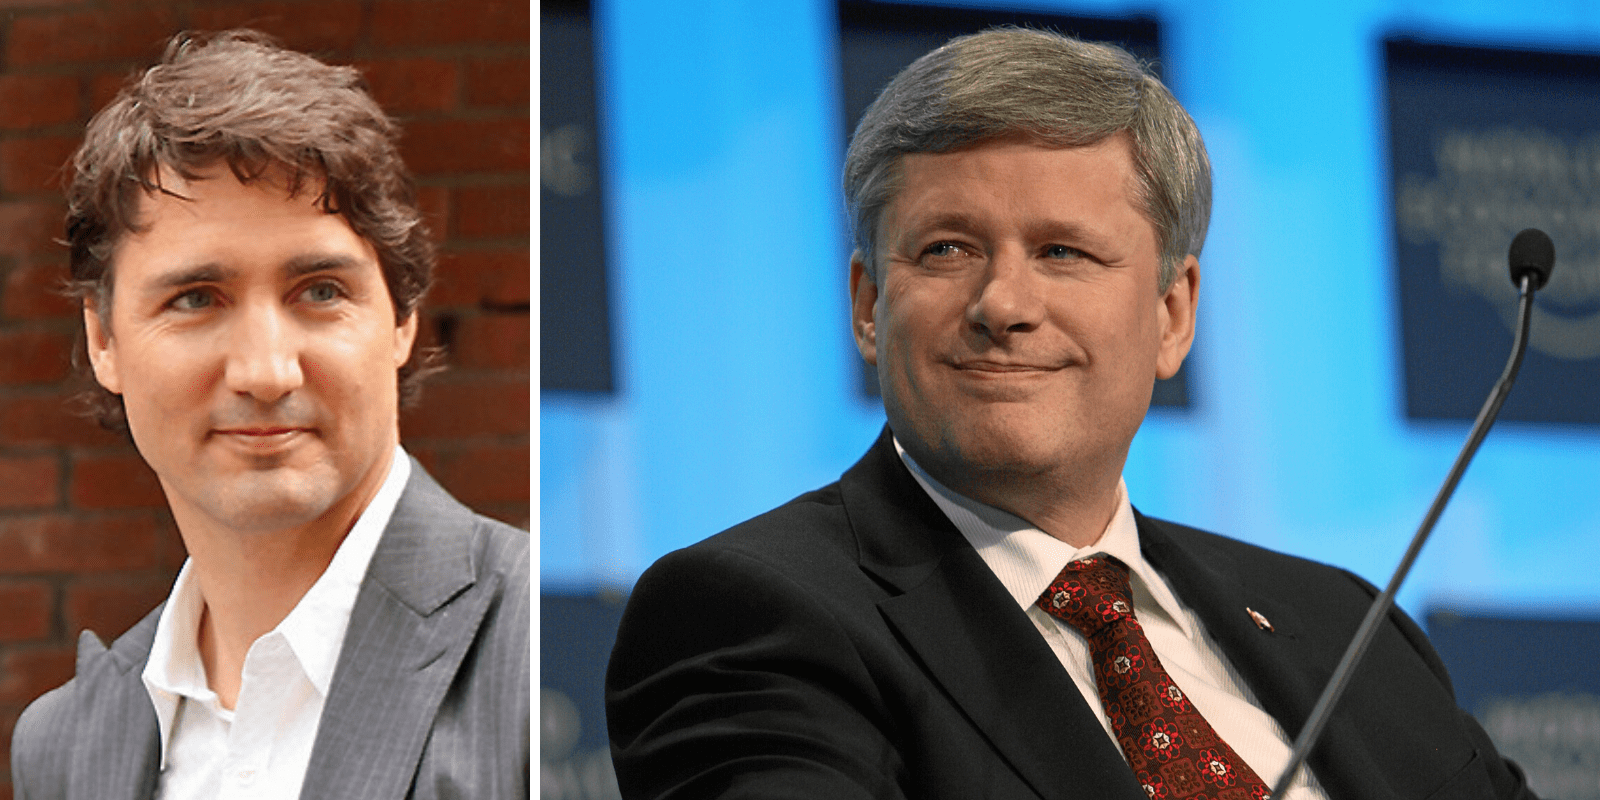 Now would be a good time to have a serious leader like Stephen Harper in charge